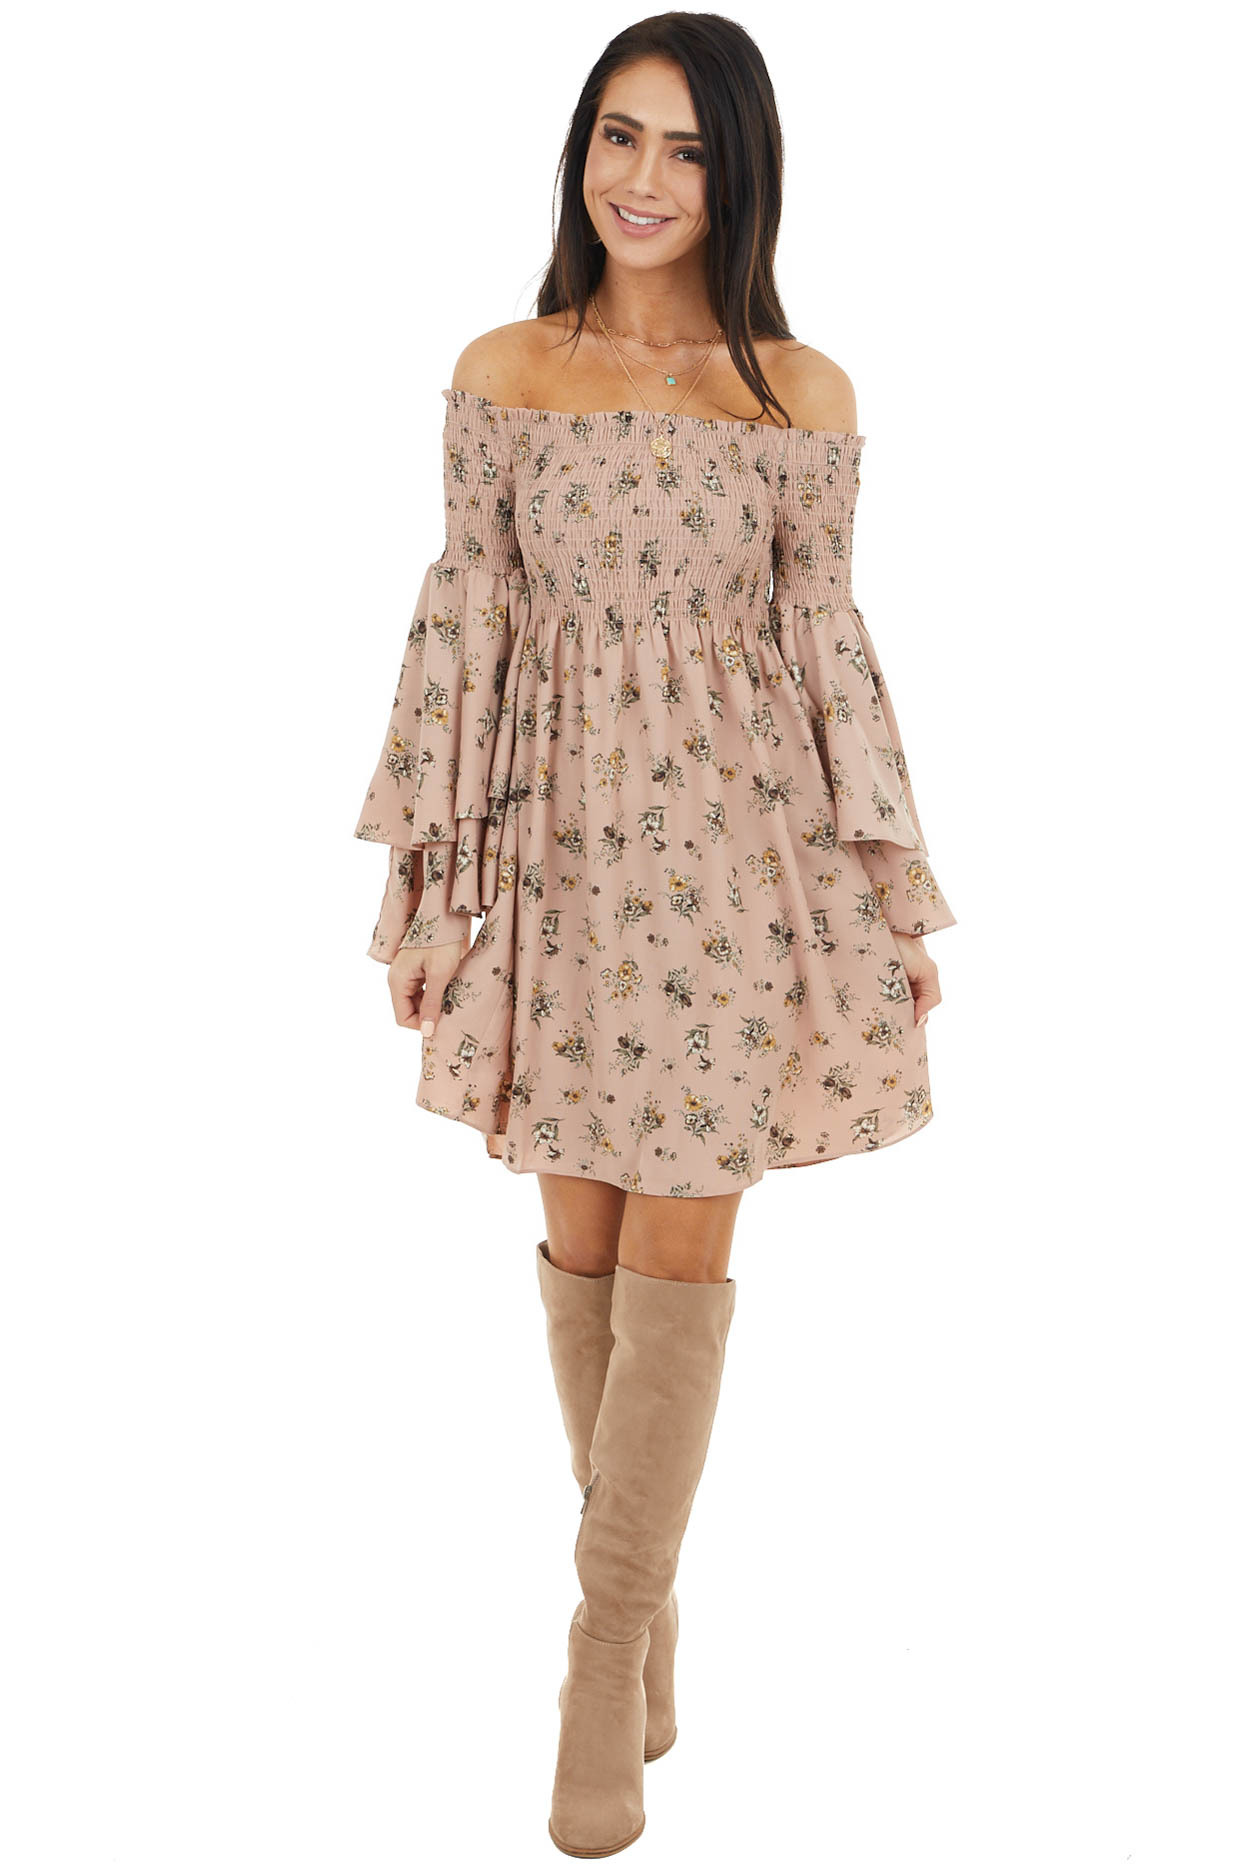 Dusty Rose Floral Print Off the Shoulder Mini Dress